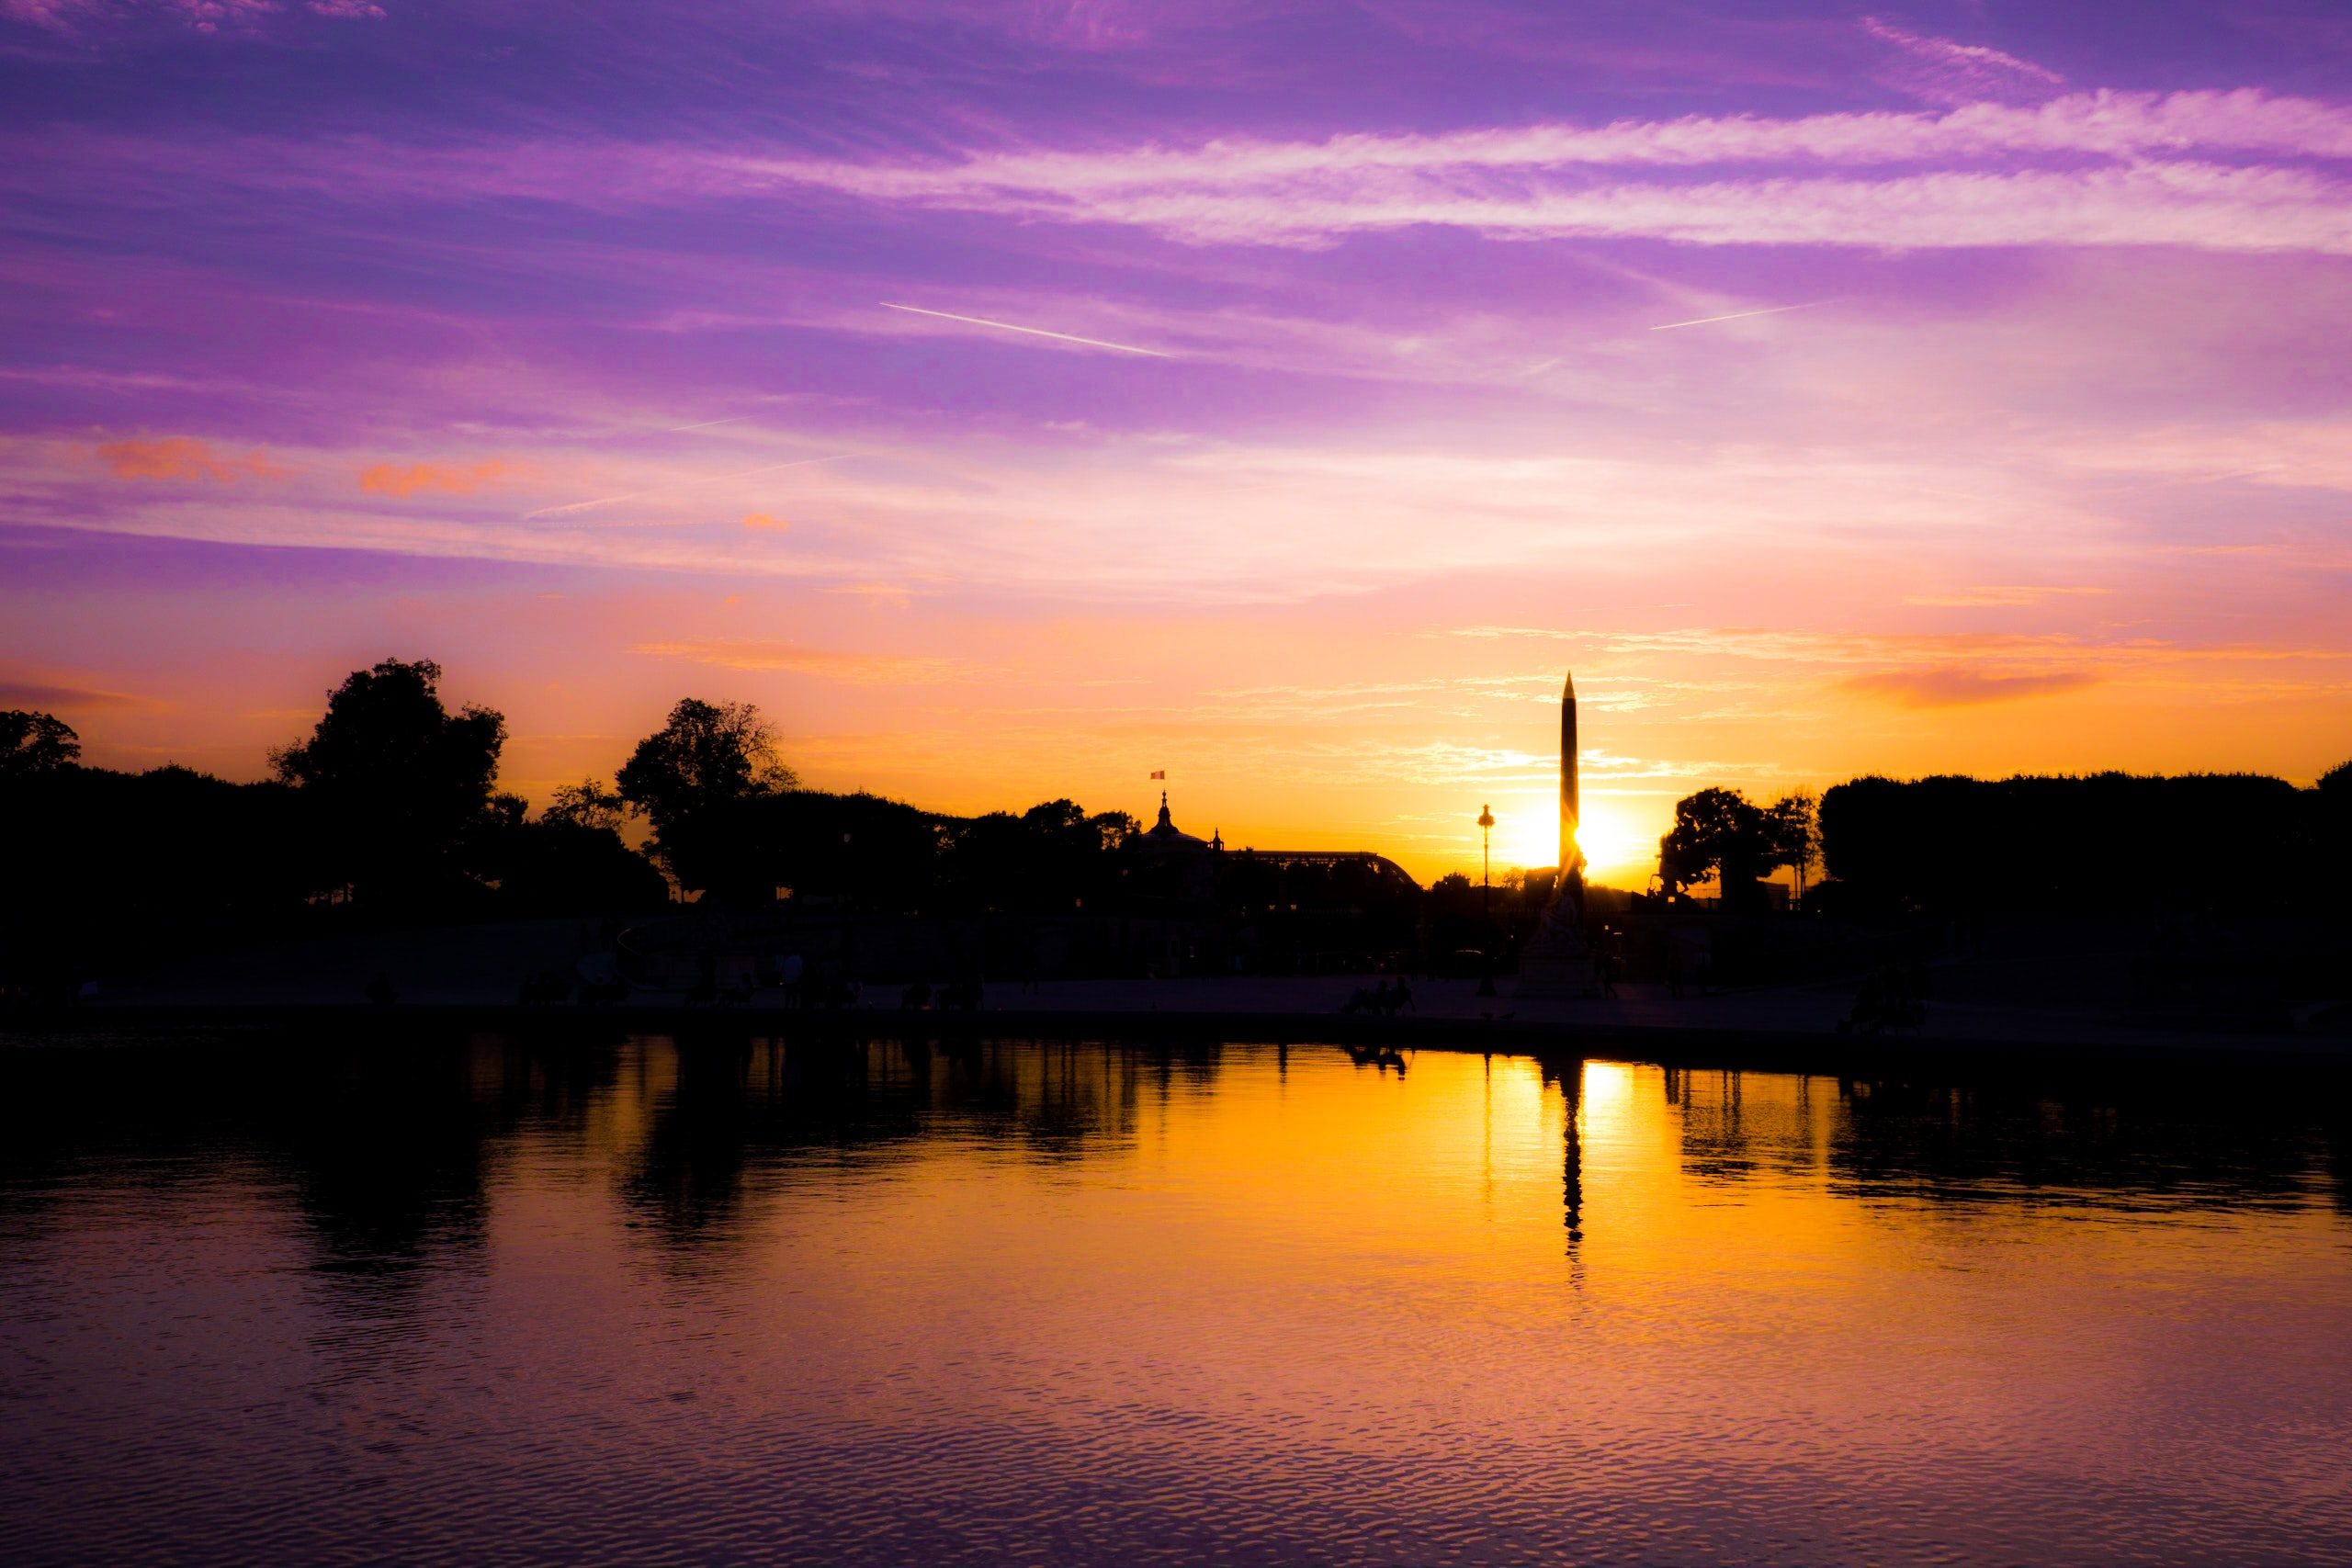 Colorful sunset and its reflection over a river with the silhouette of buildings.